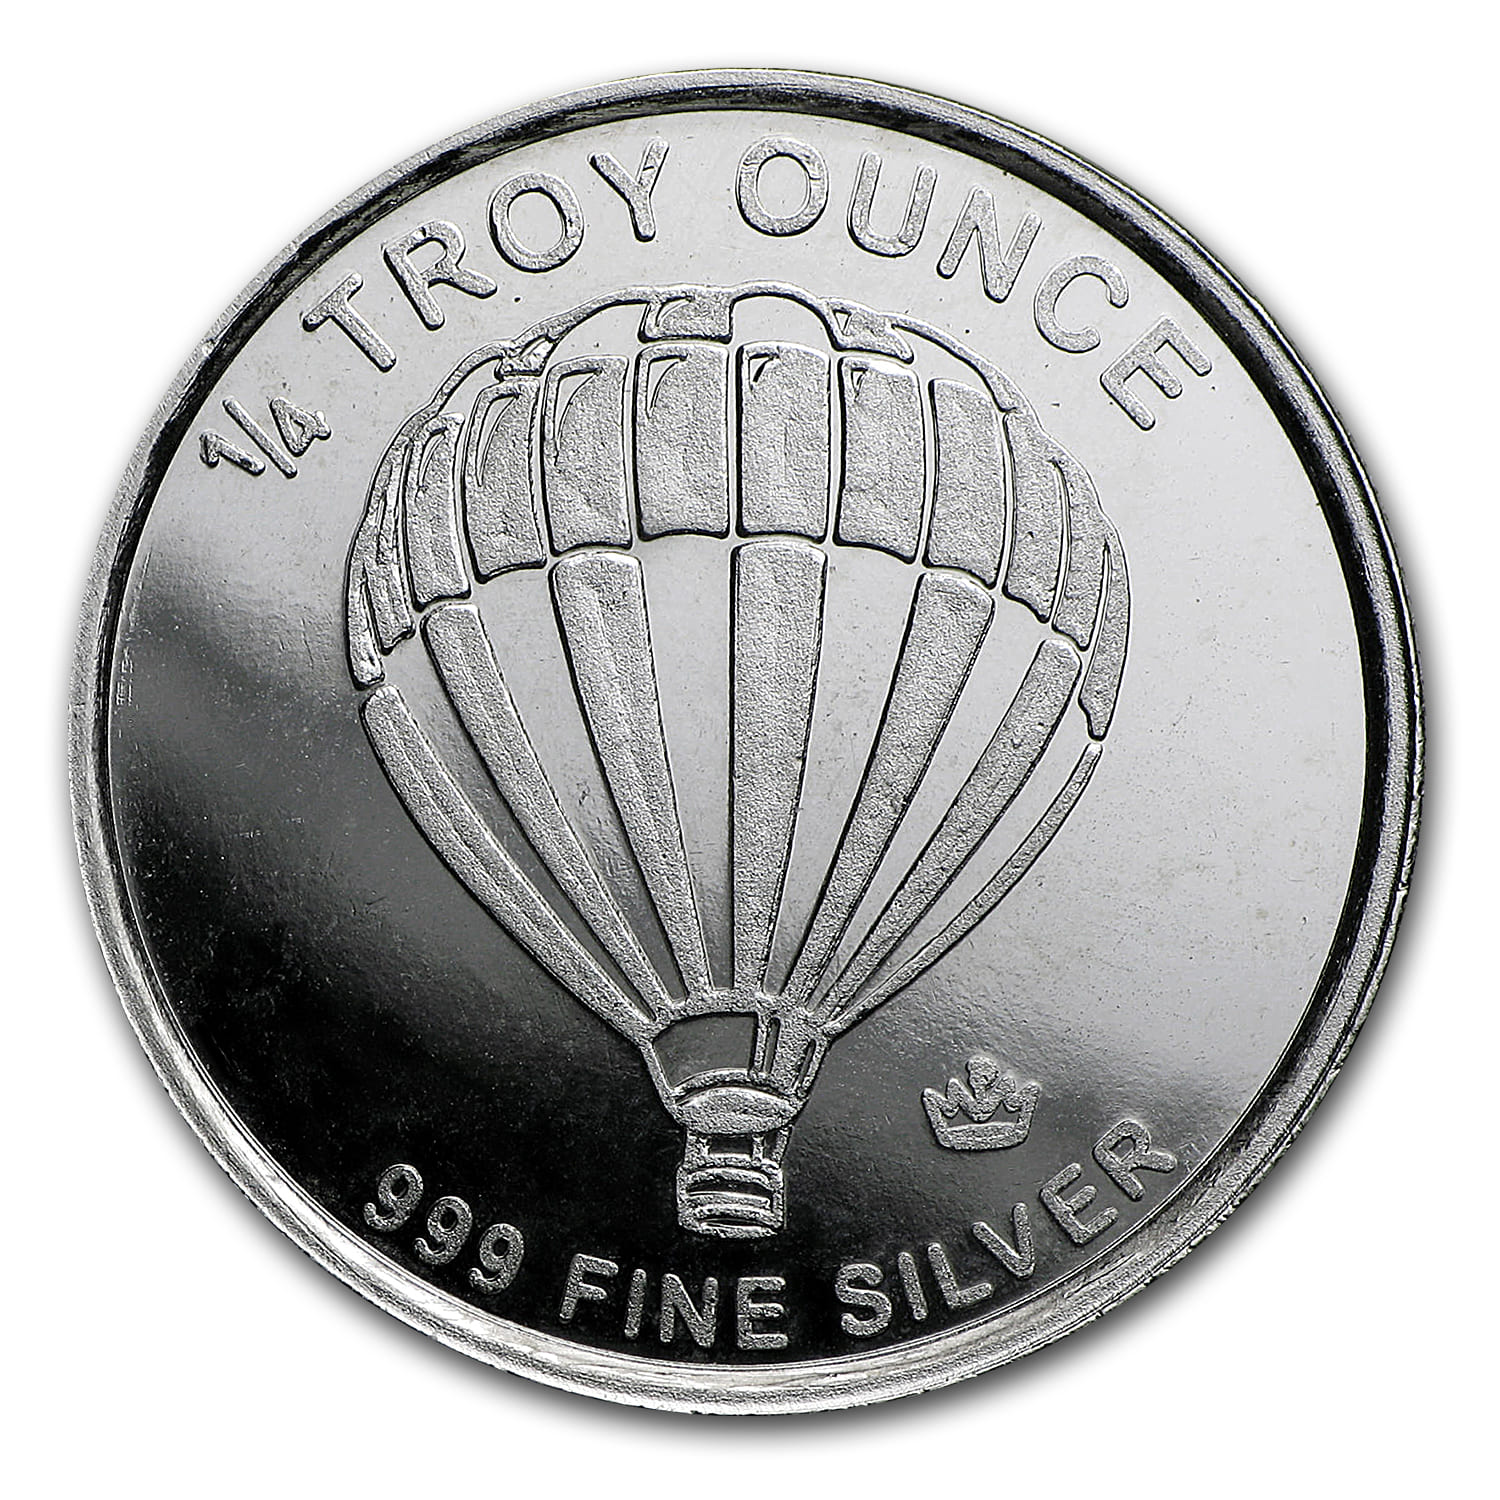 1/4 oz Silver Round - Monarch Precious Metals (Hot Air Balloon)